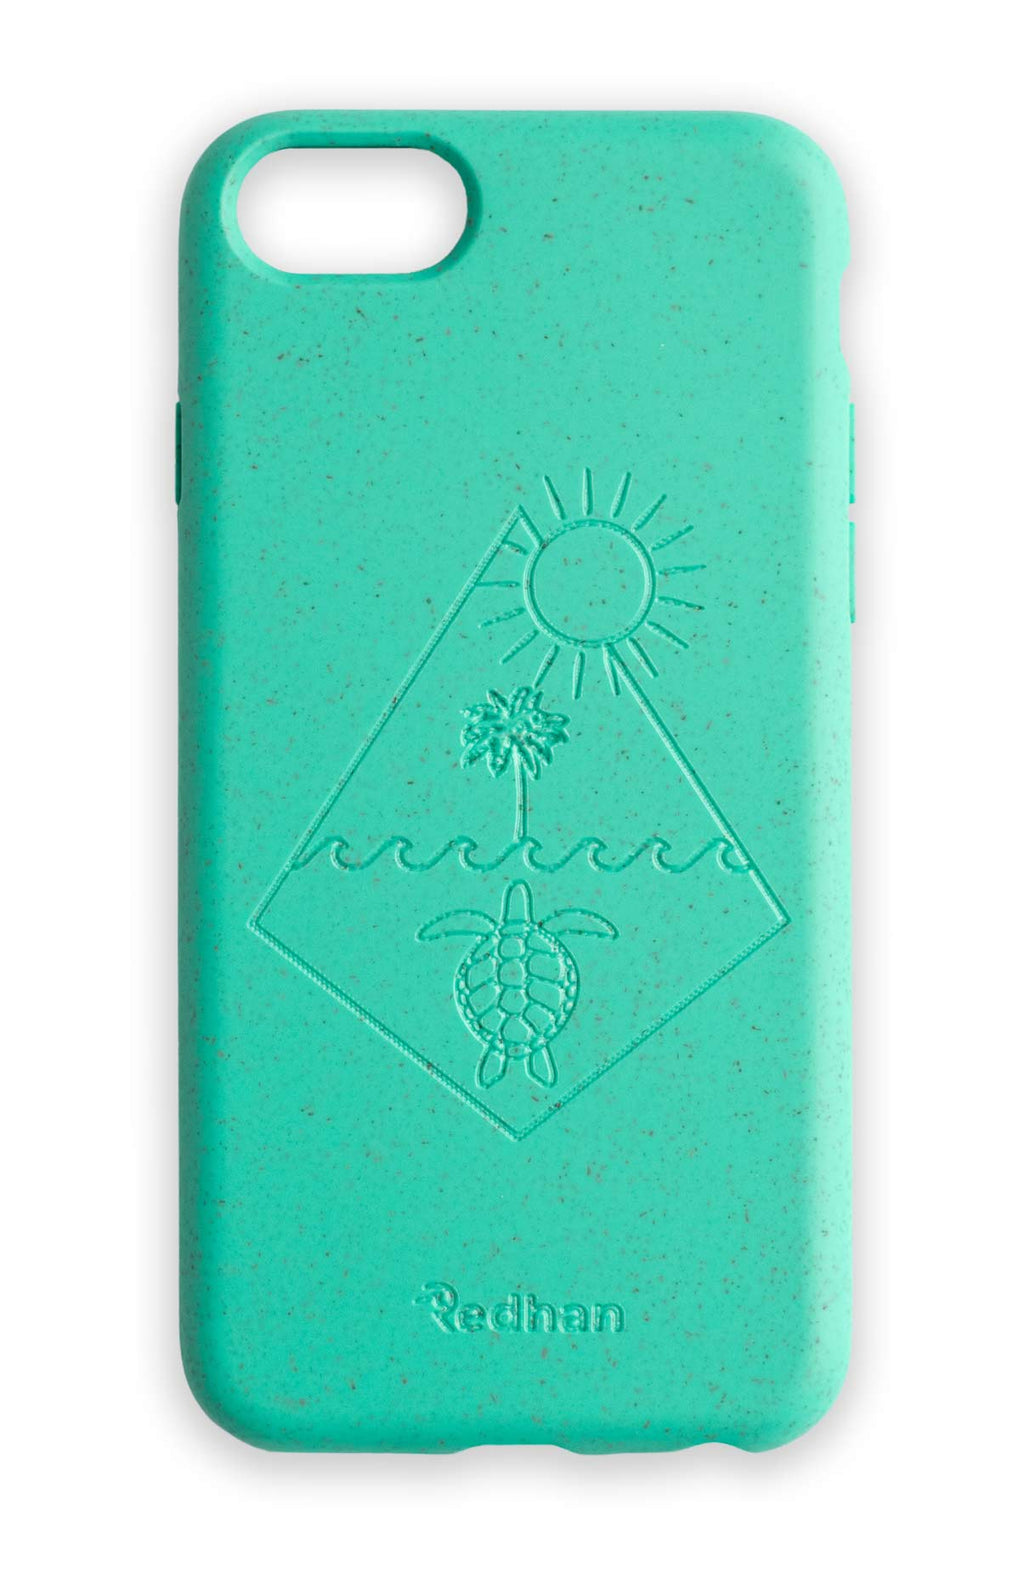 Eco Friendly iPhone  6/6S/7/8/SE (2nd Gen) Phone Case - Turtle 2.0 in Turquoise